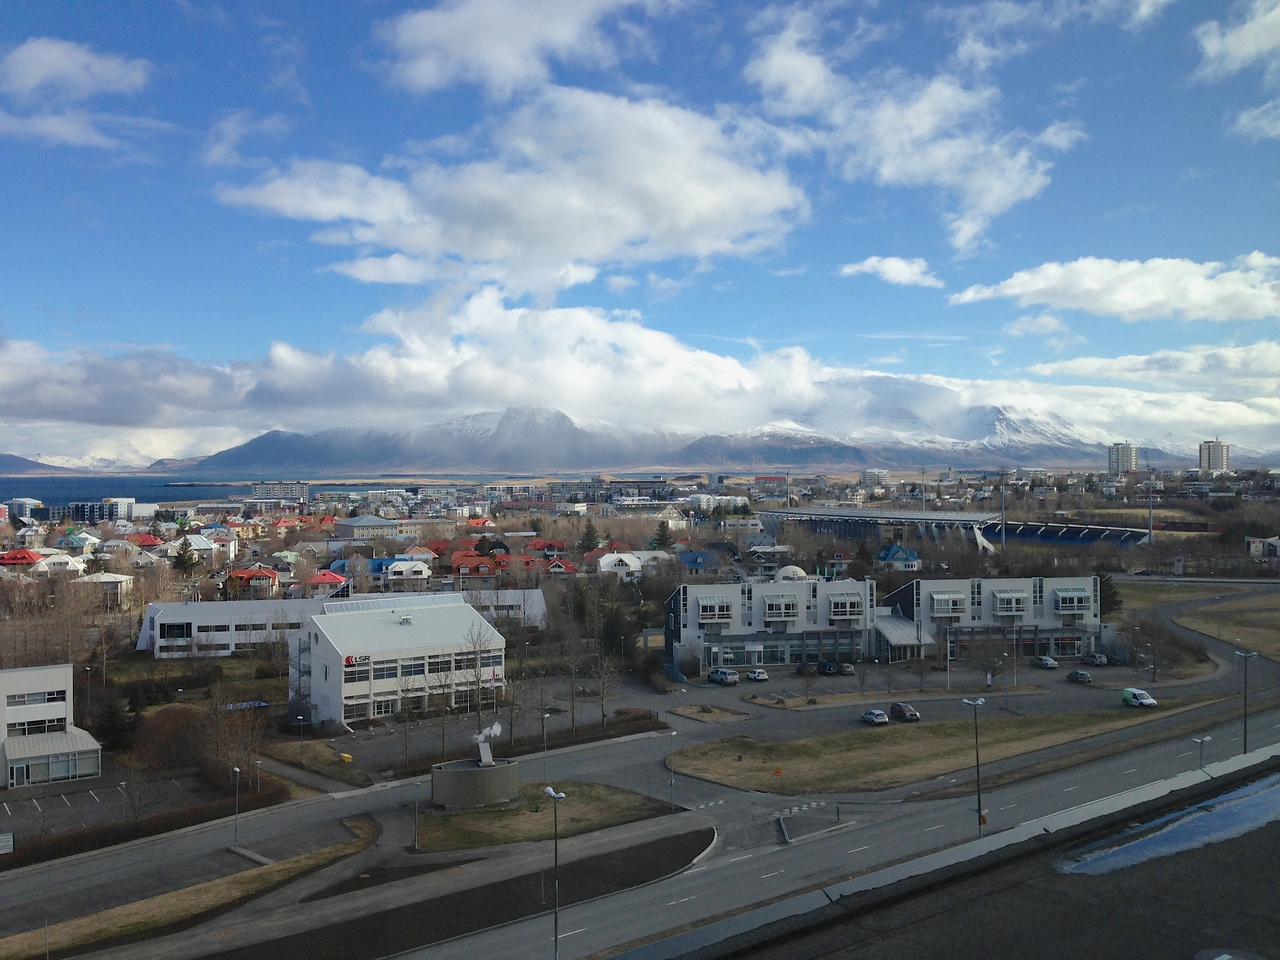 You can see many of the large geological formations of Iceland from the upper floor lobbies of the hotel.